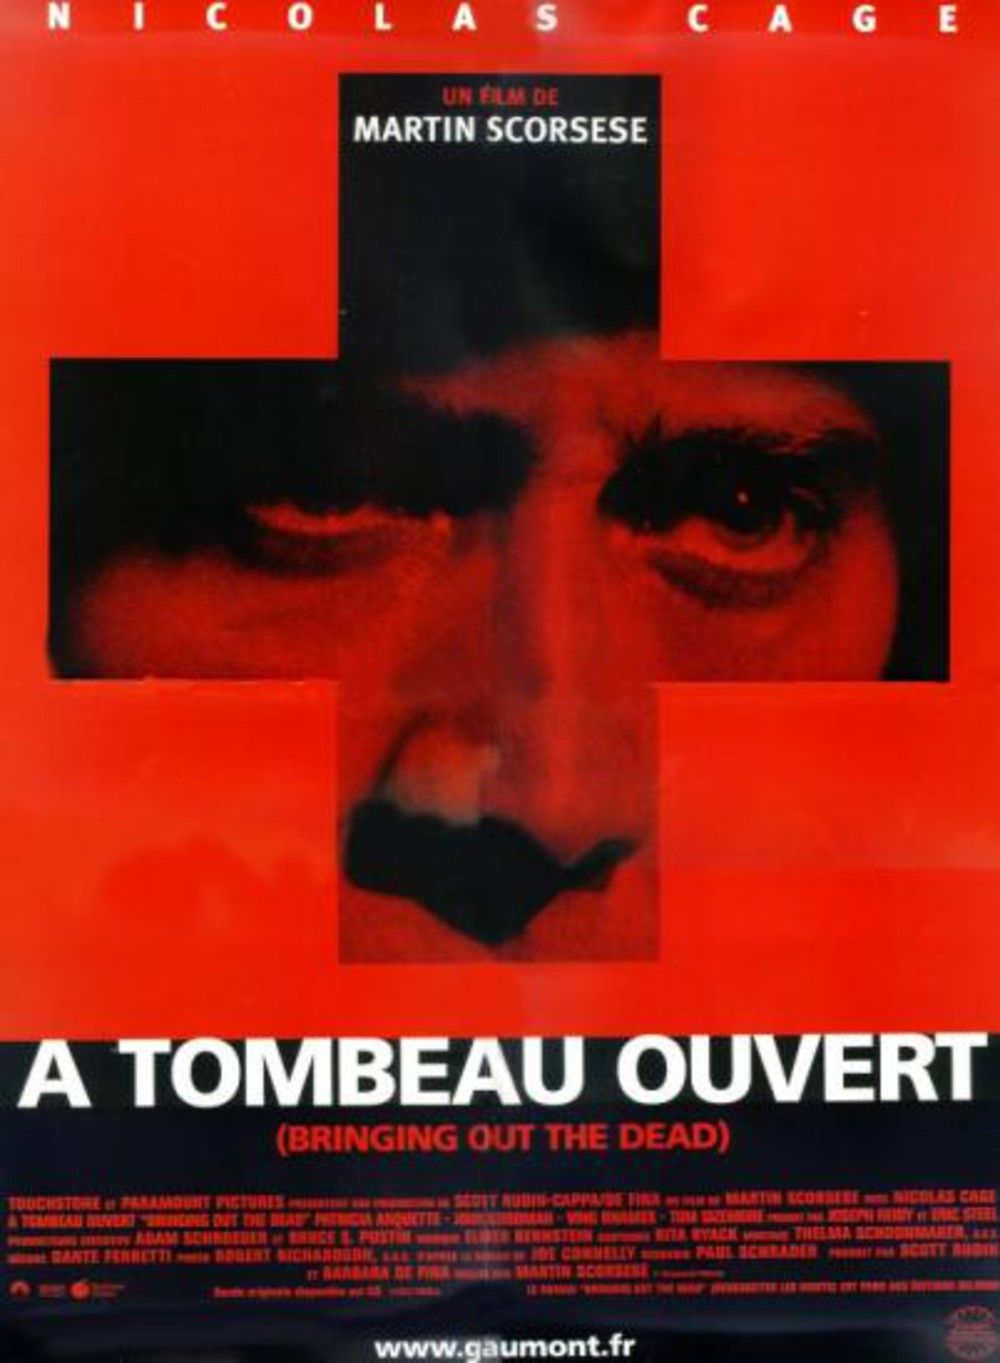 Affiche poster tombeau ouvert Bringing Out Dead disney touchstone